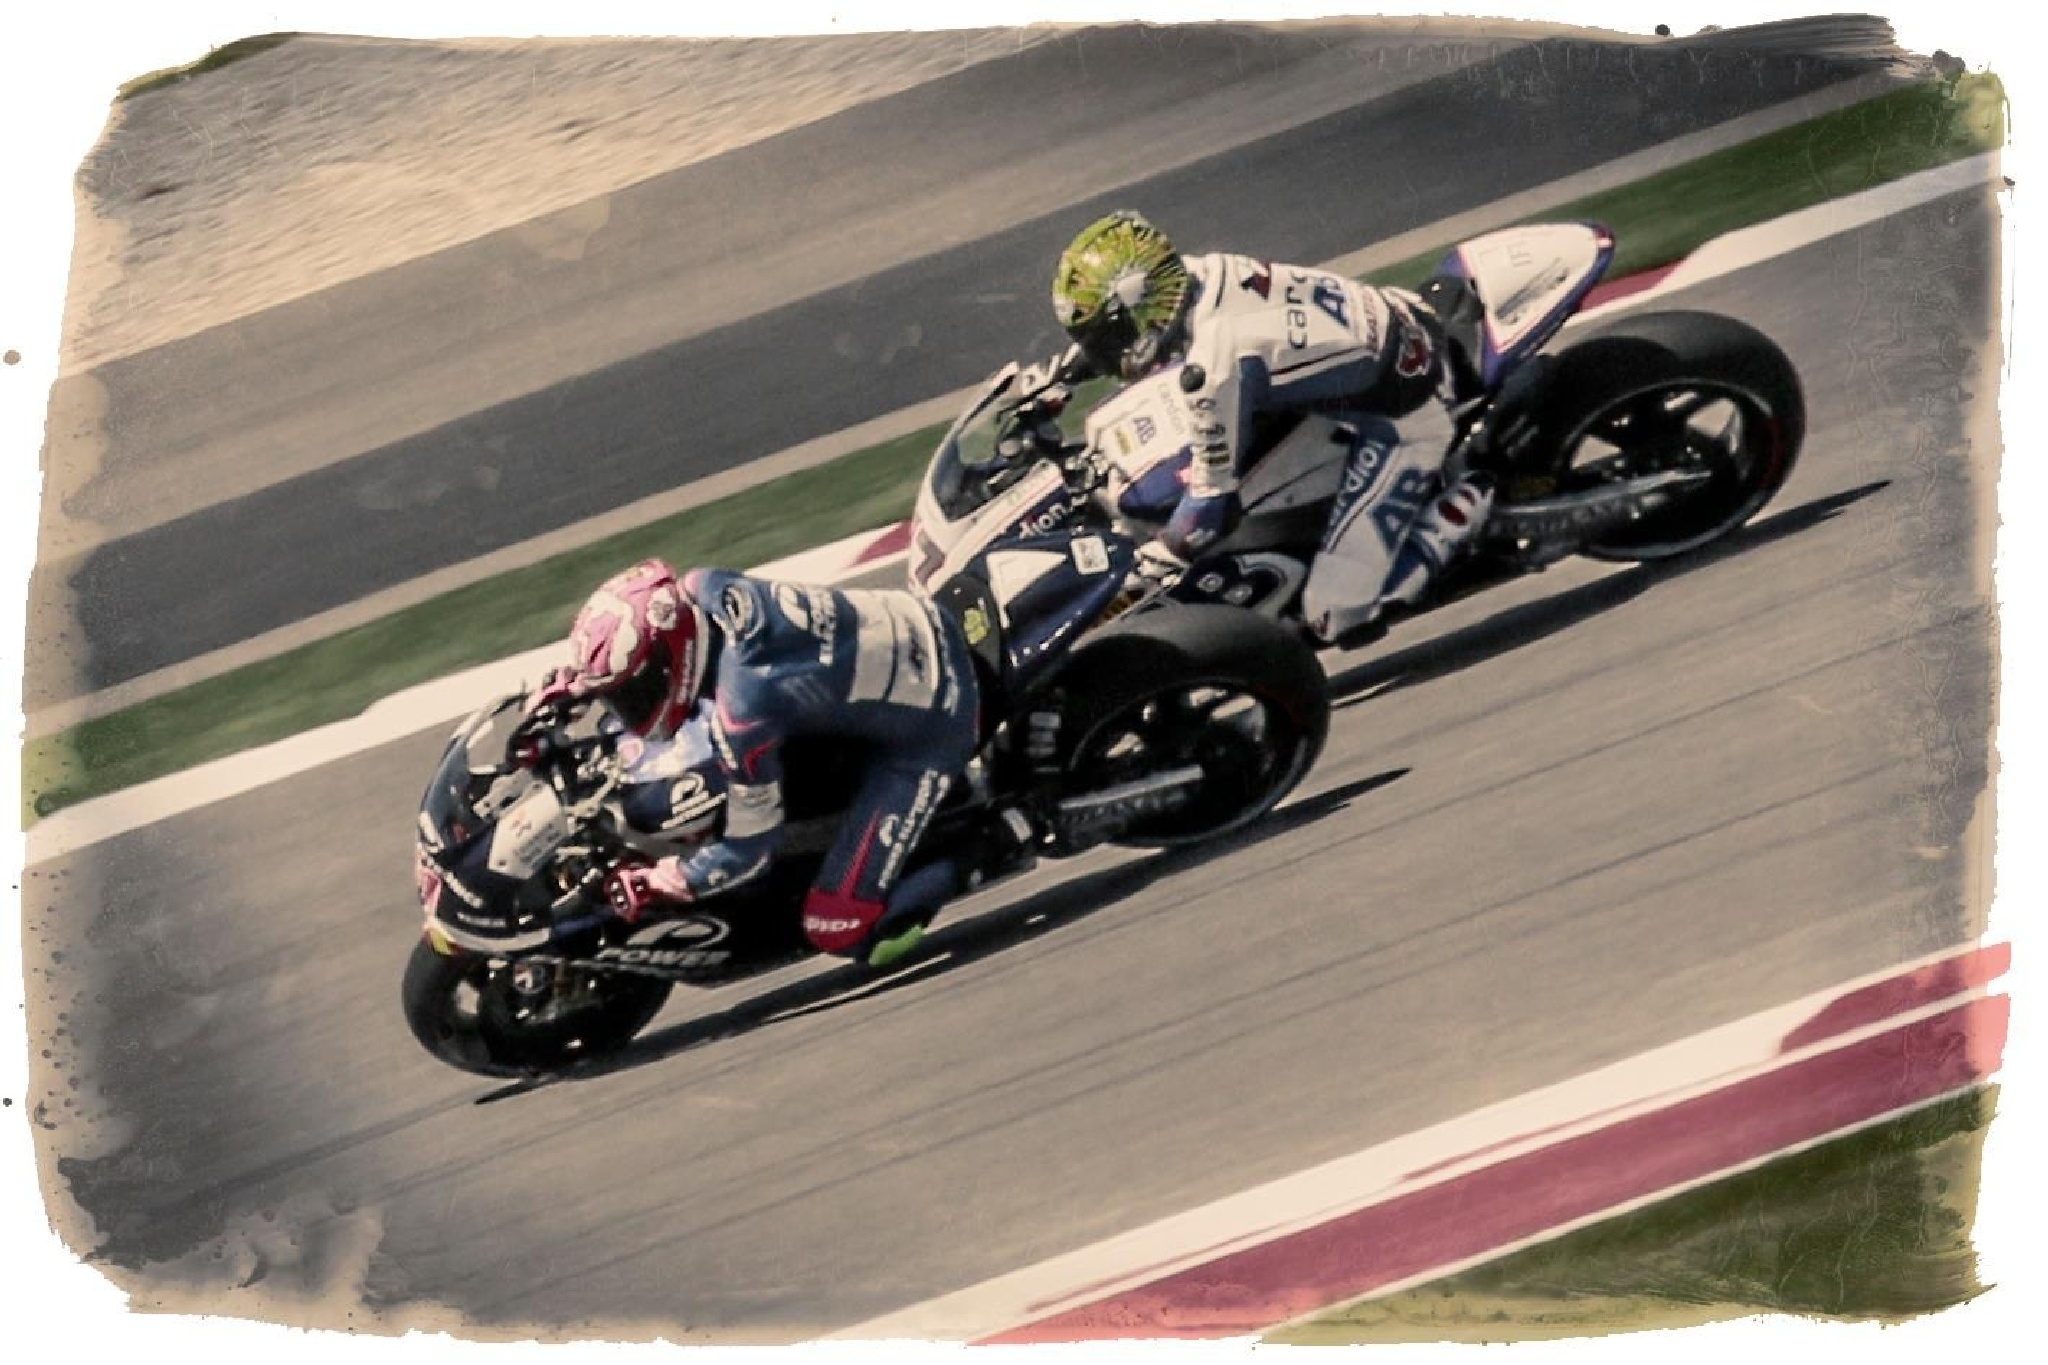 MotoGP at Circuit of the Americas by Steve Williams